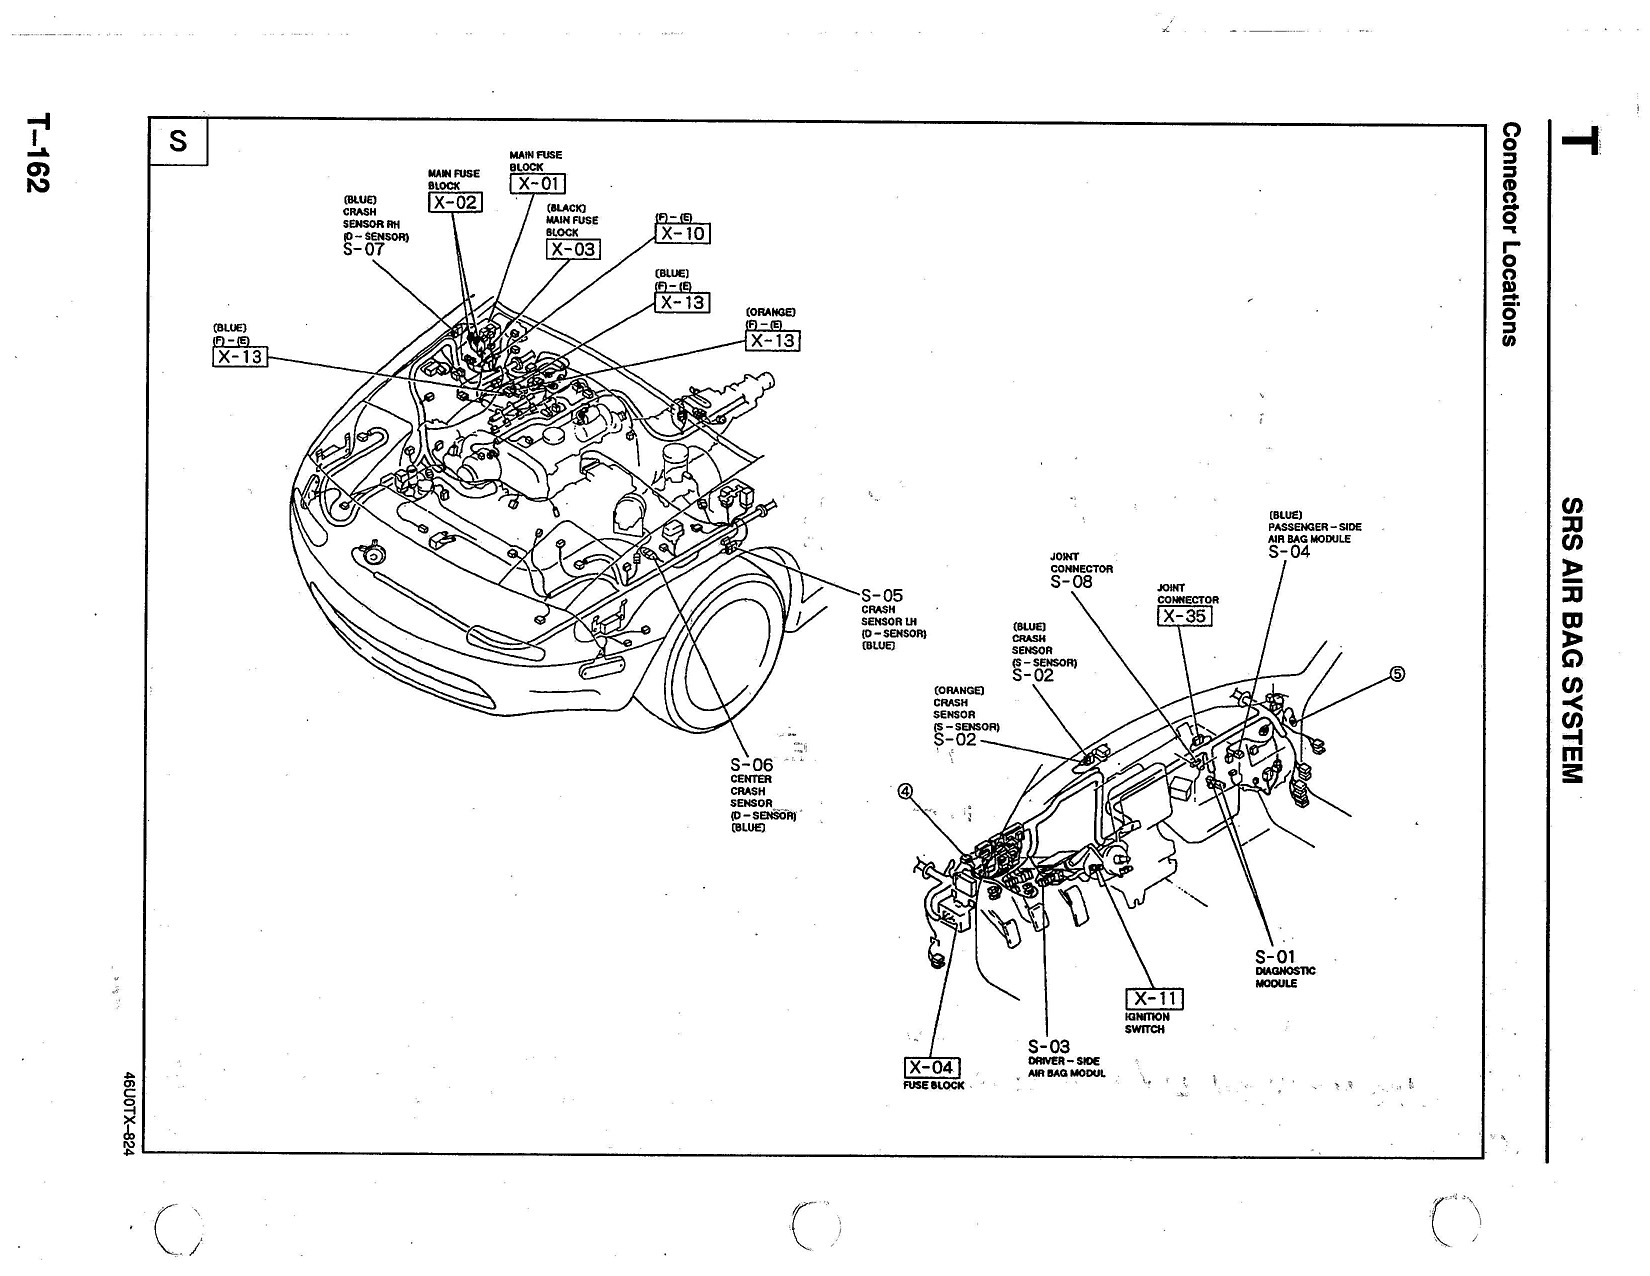 1994 Miata Radio Wiring Diagram Solutions 1995 Fuse Box Airbag Wire Center